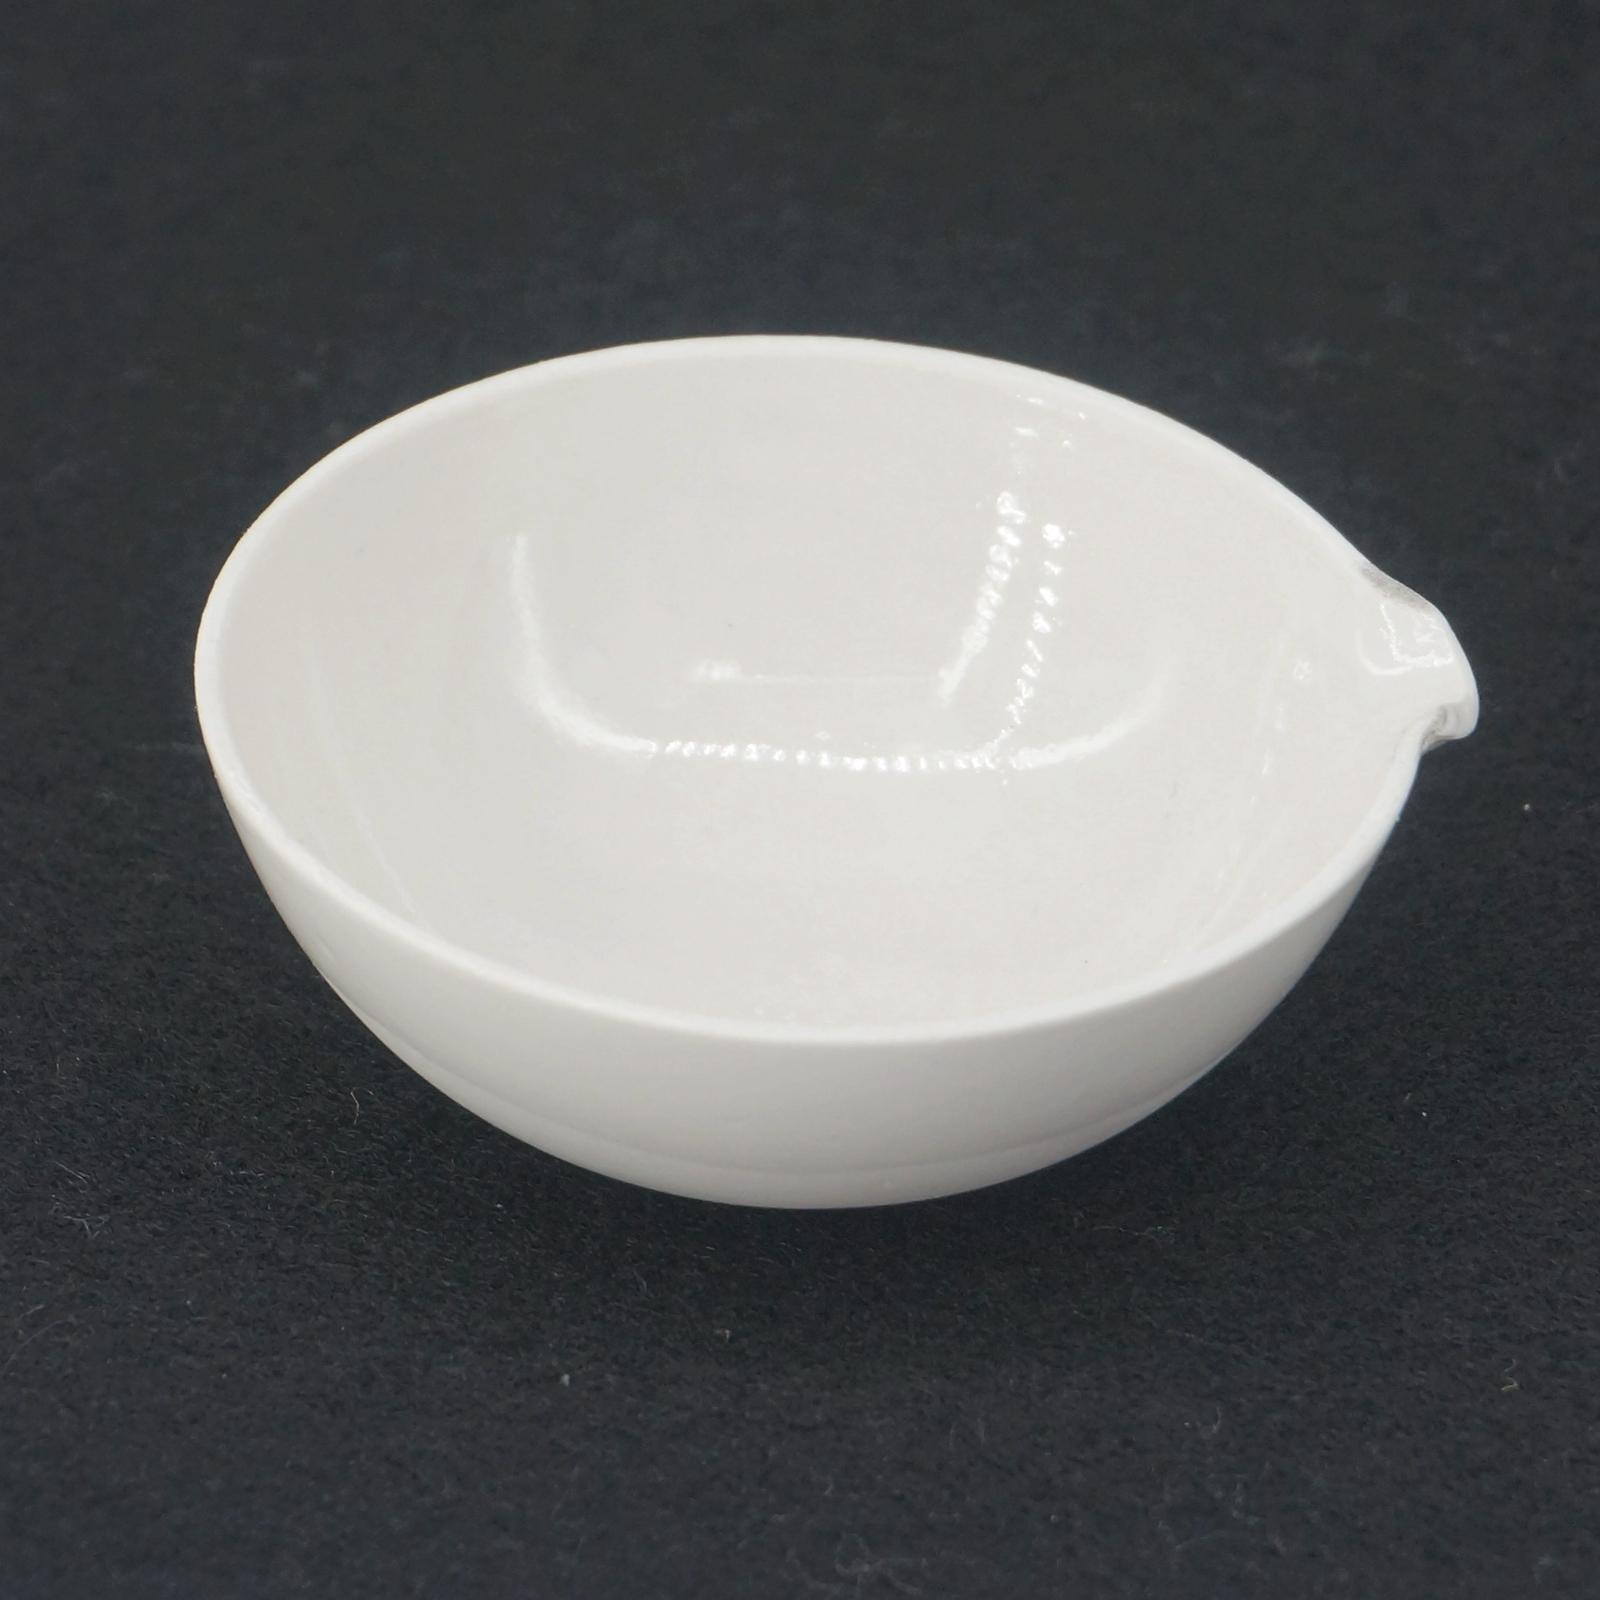 60ml Ceramic Evaporating dish Round bottom with spout For Chemistry ... for Evaporating Dish Laboratory Apparatus  56mzq